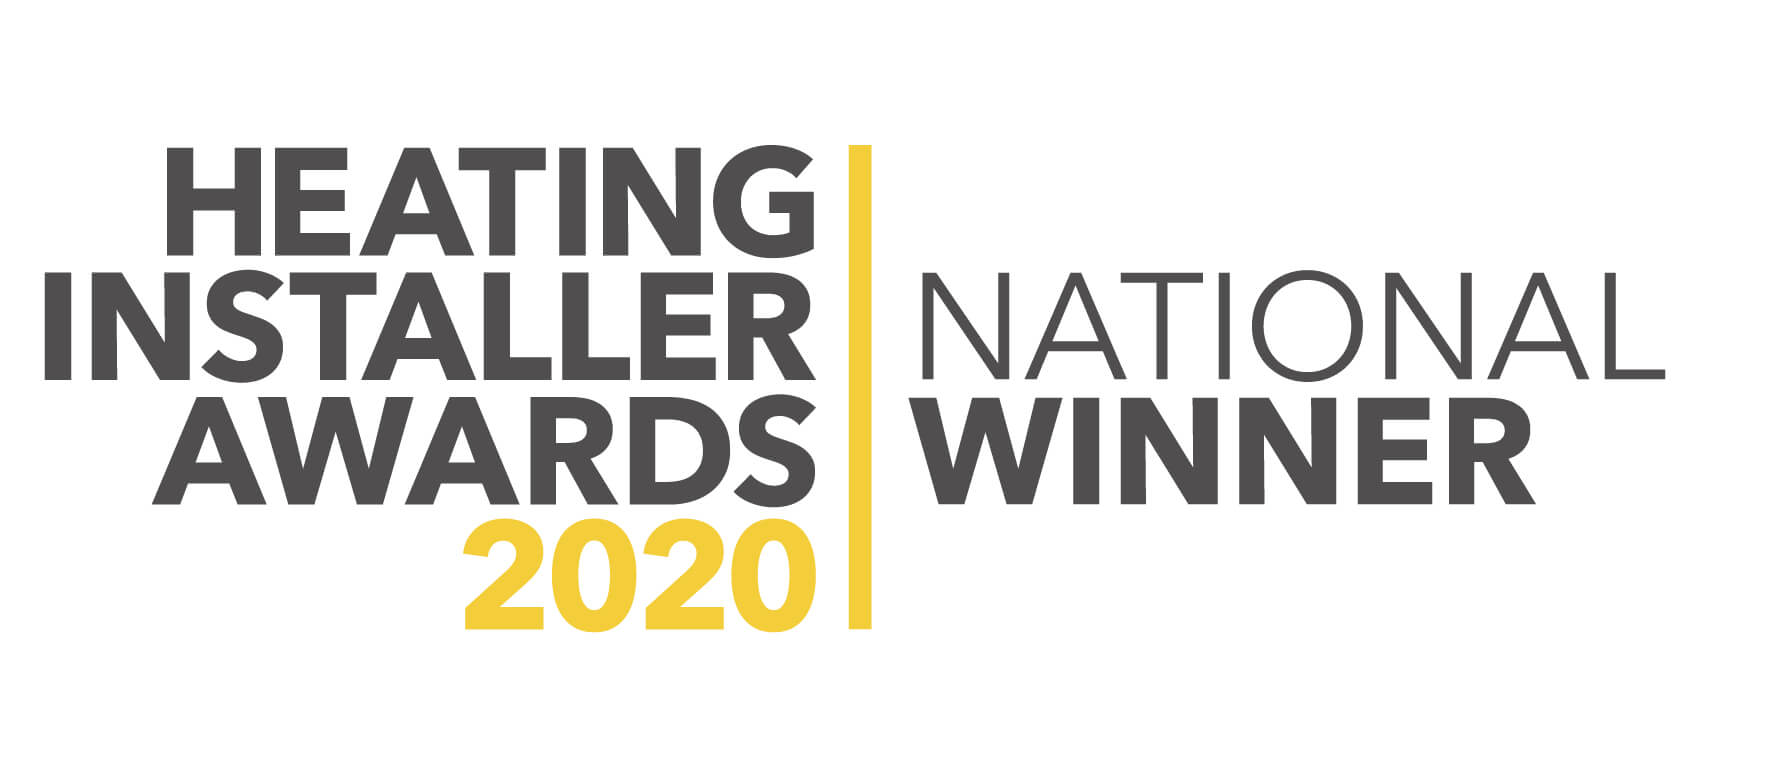 National Heating Installer Awards 2020 WINNERS